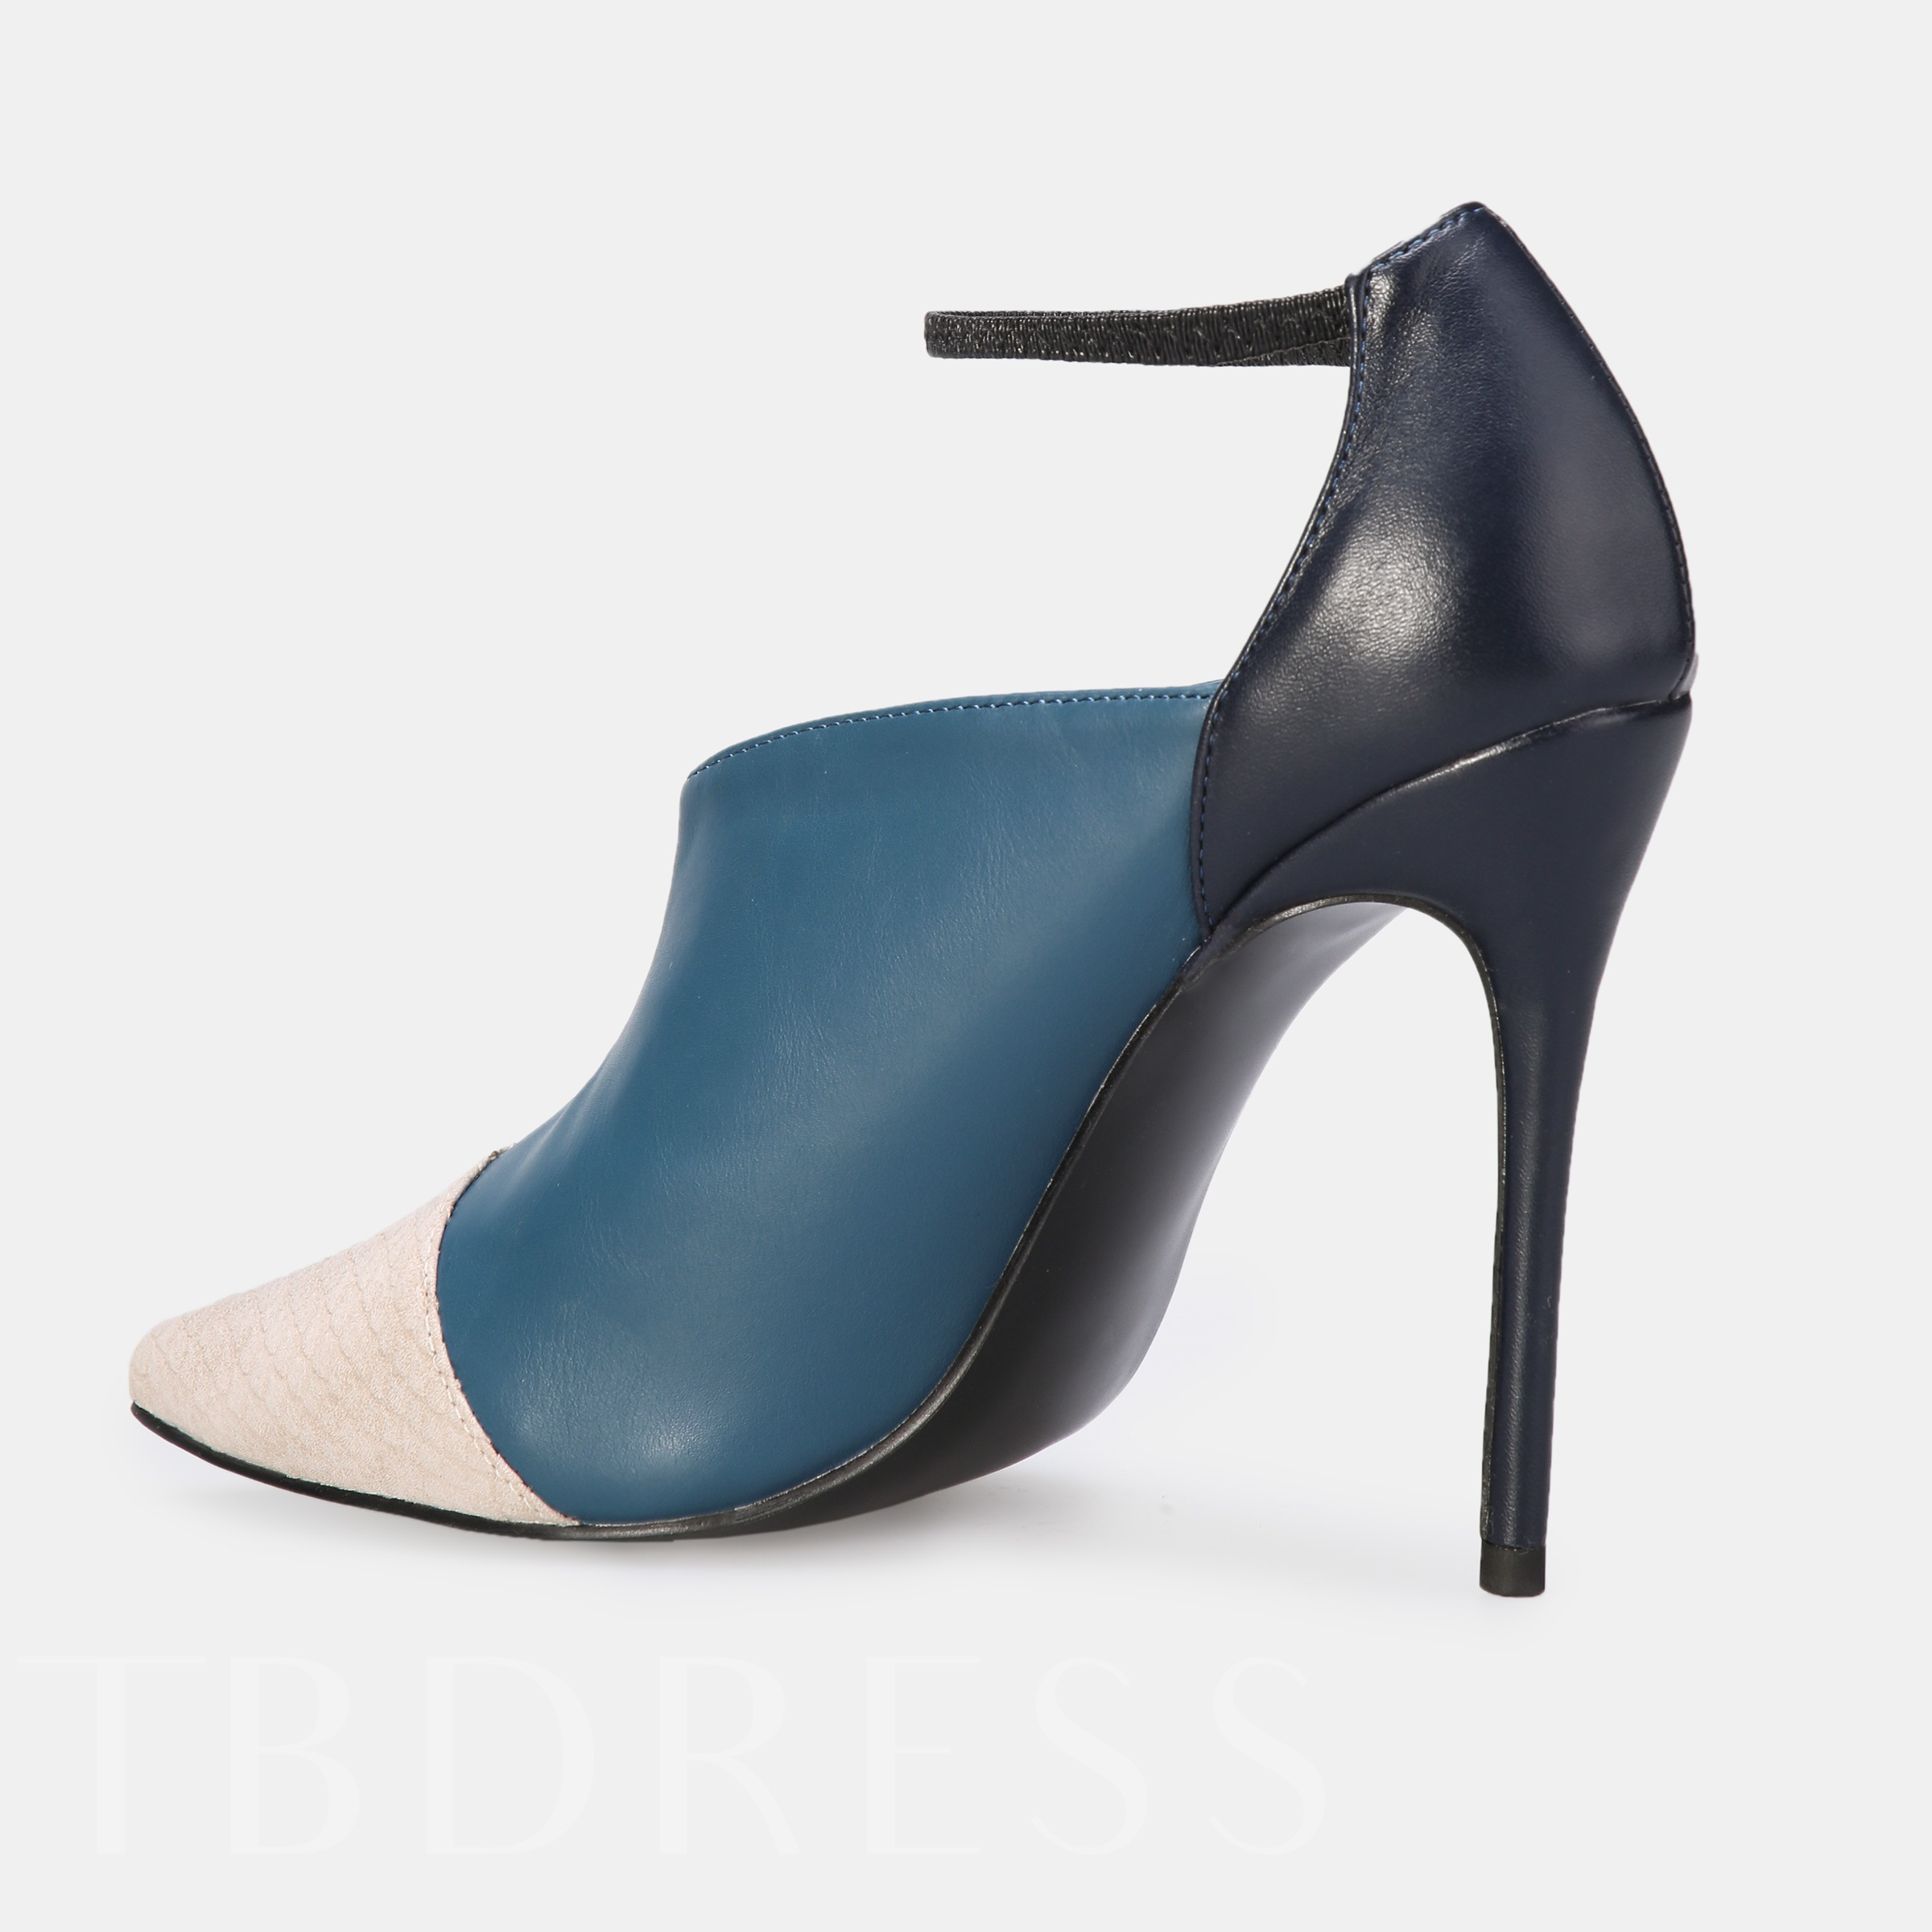 Pointed Toe Stiletto Heel Line-Style Buckle Color Block Pumps